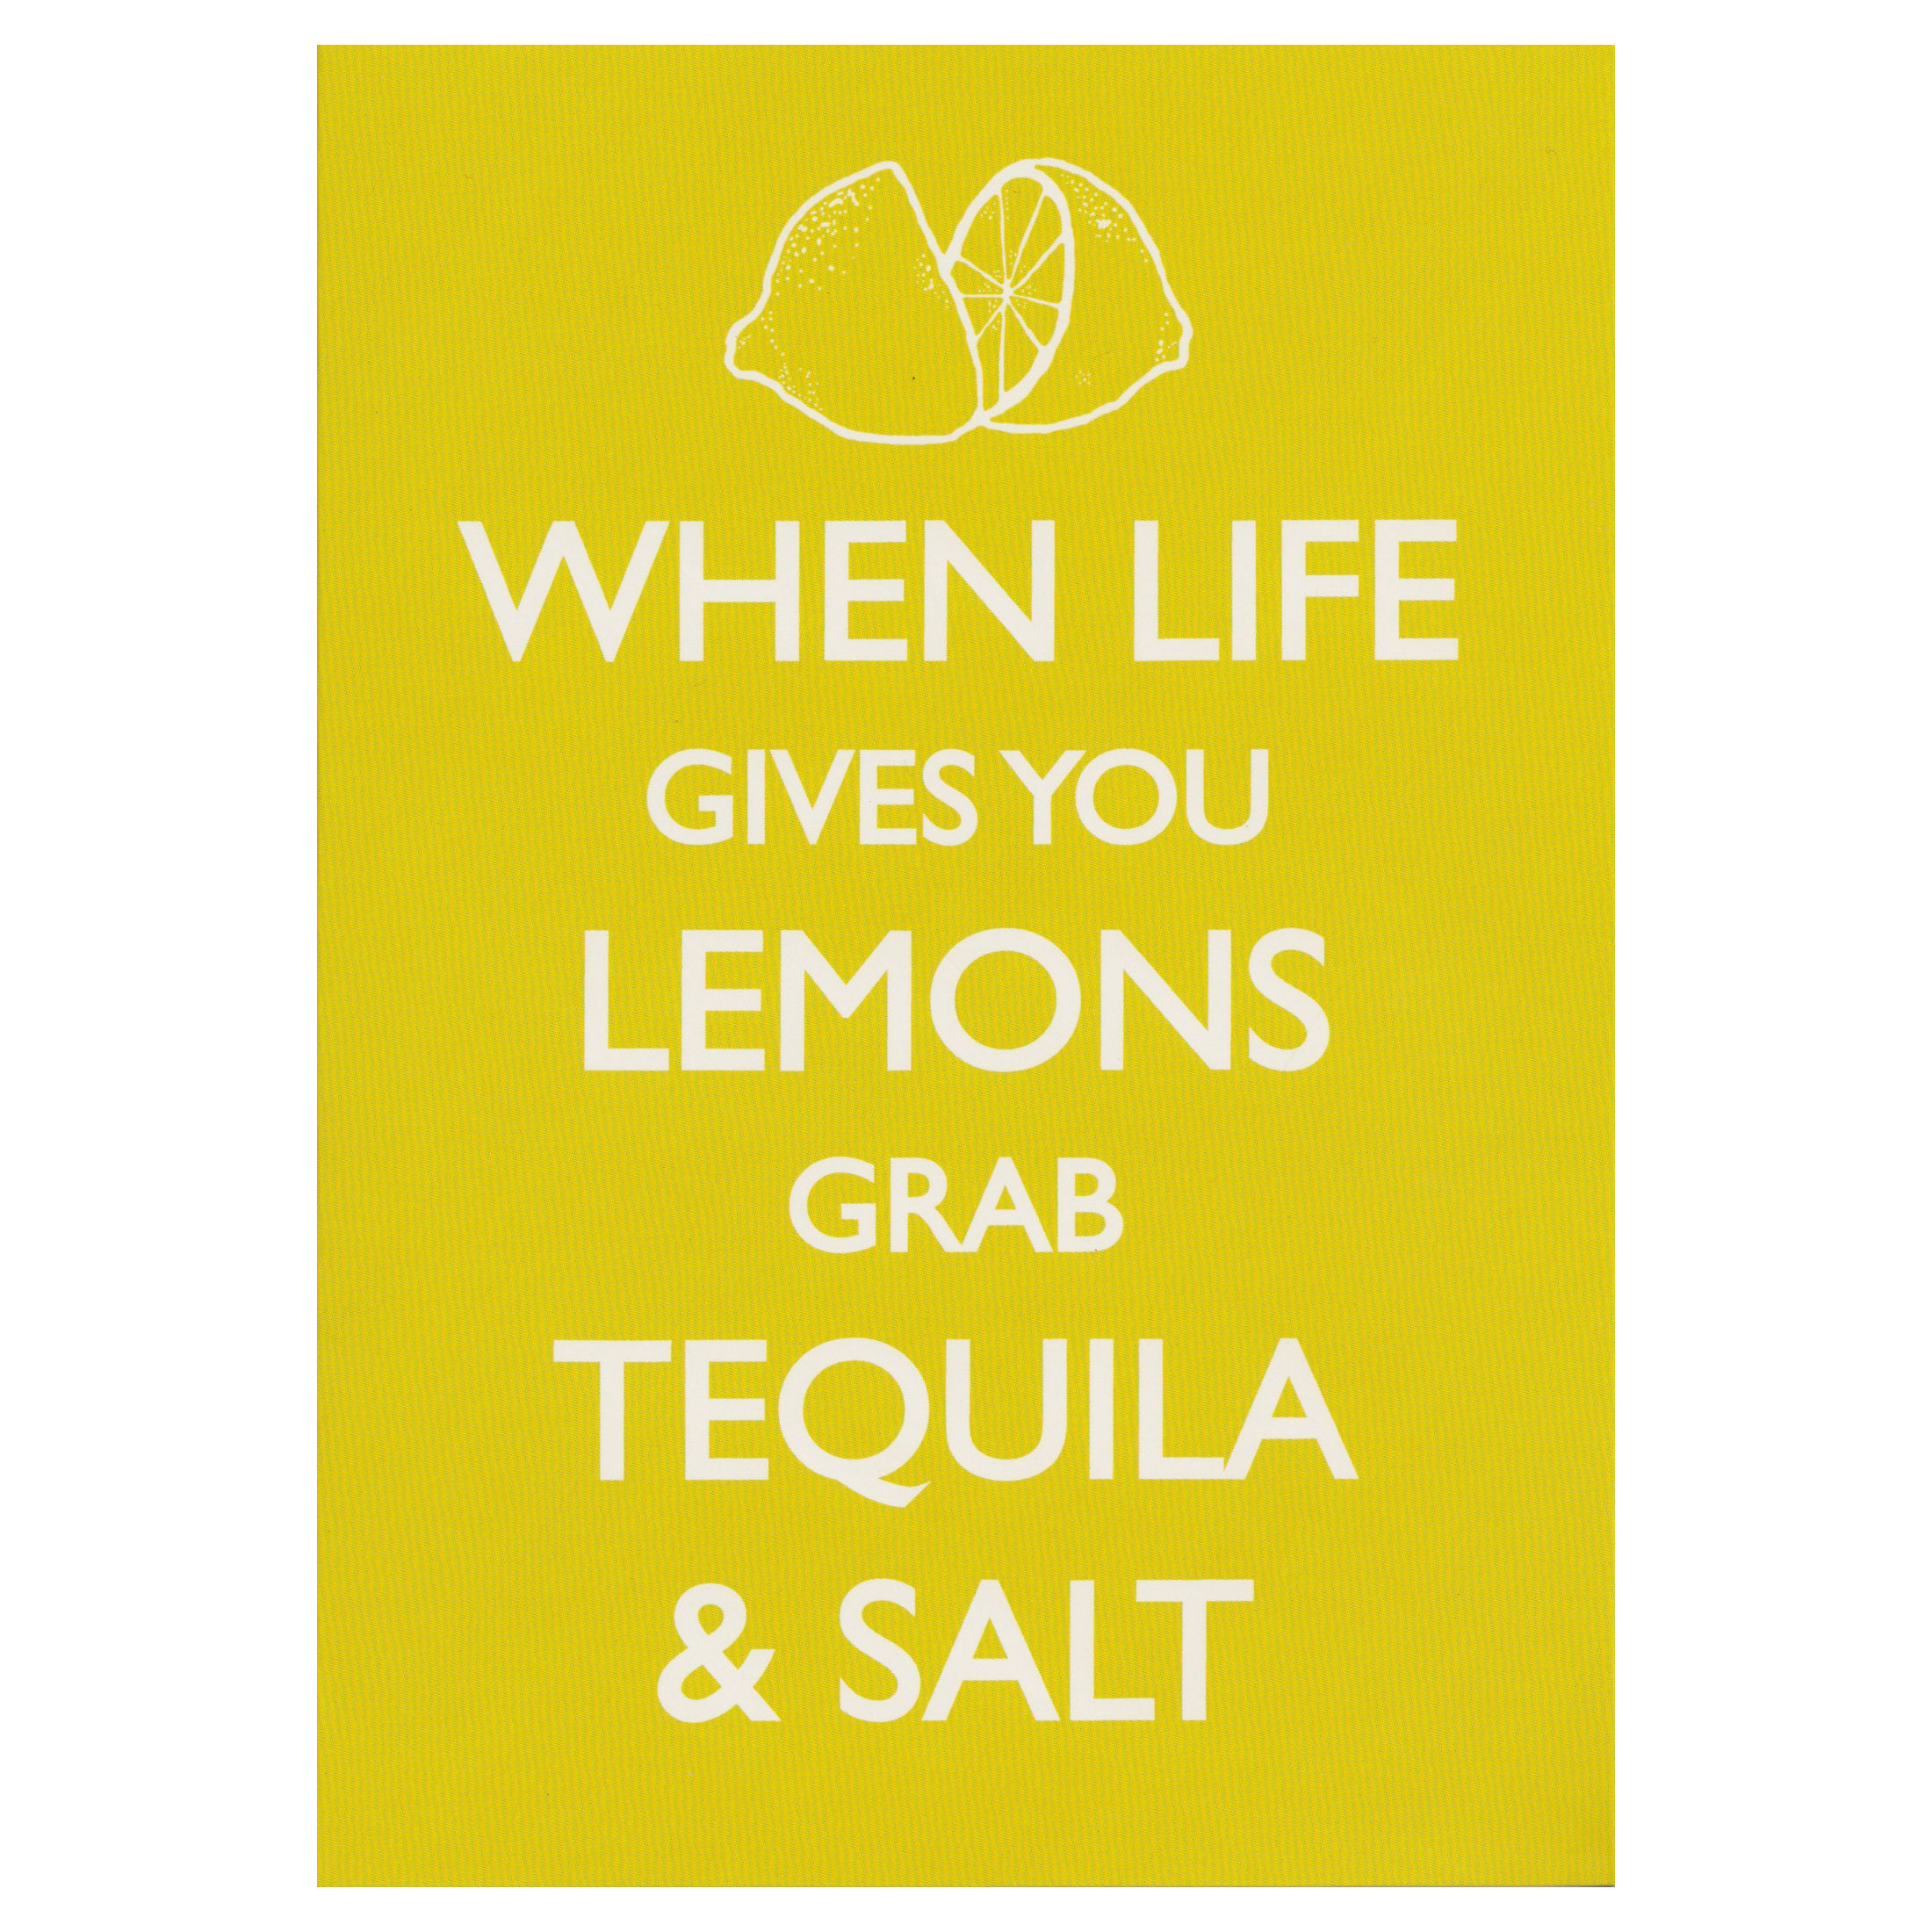 When Life Gives You Lemons Grab Tequila Salt Greeting Card